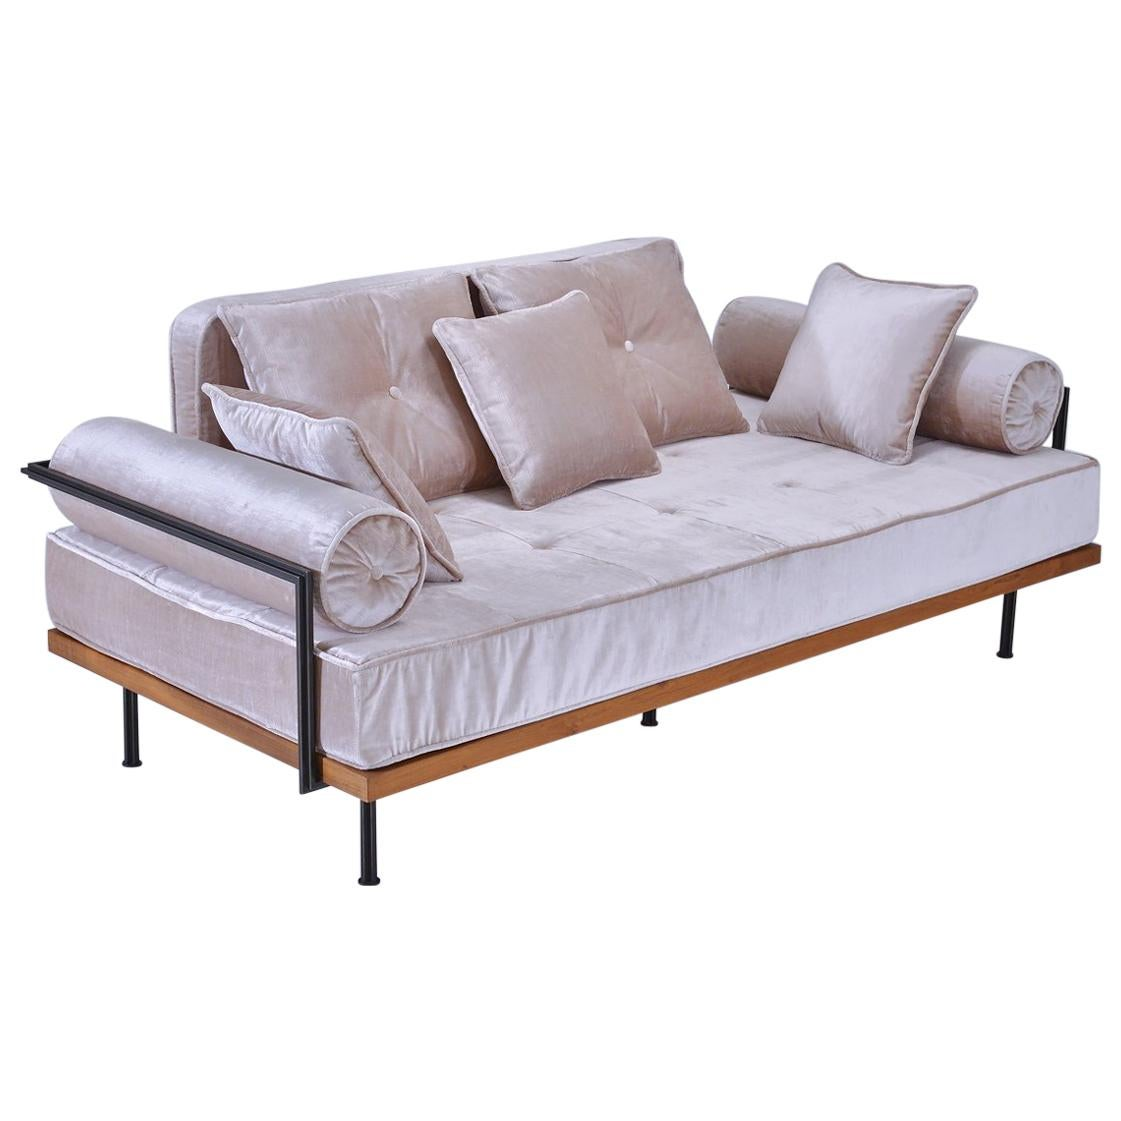 Bespoke Two-Seat Sofa, Brass & Reclaimed Hardwood Frame, P. Tendercool